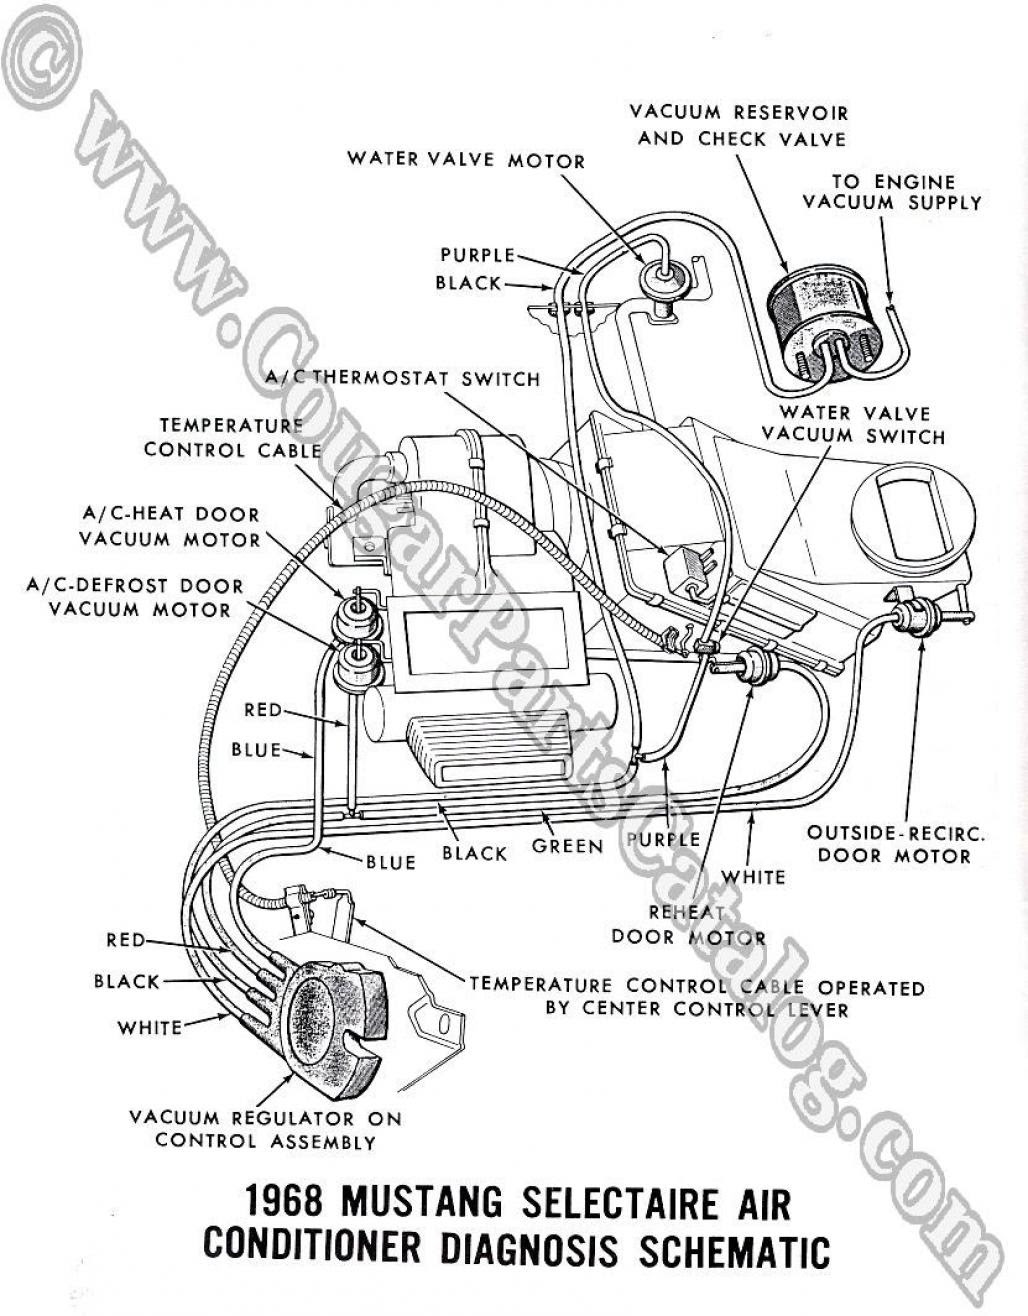 Mustang diagrams of engine compartment fuse box, i will ...